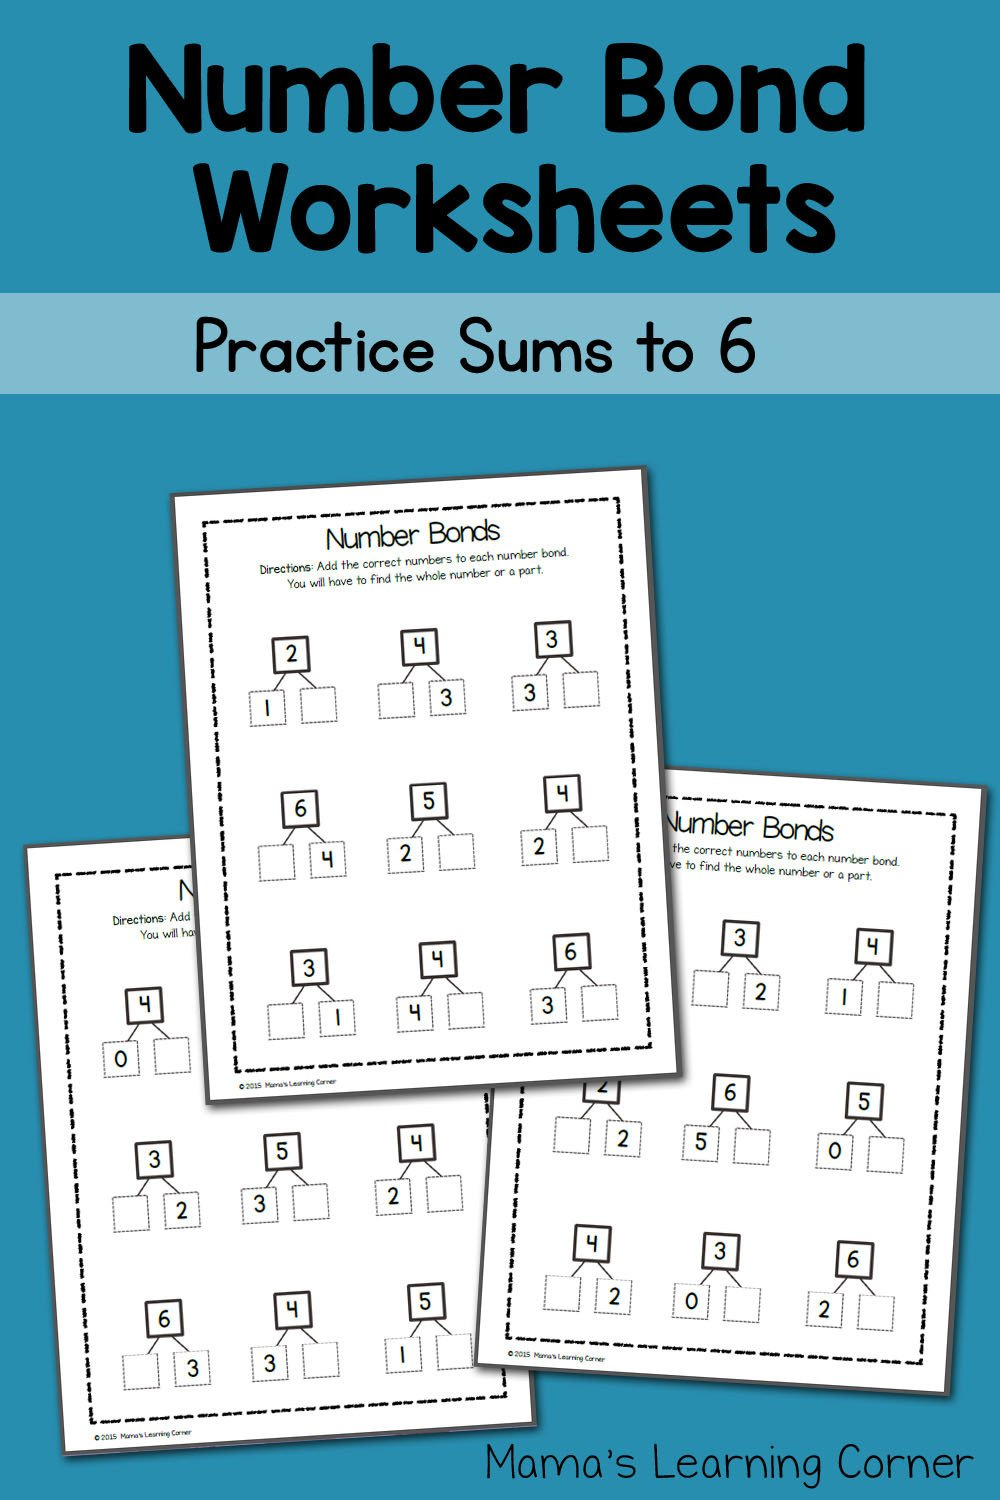 Number Bond Worksheets Kindergarten Number Bond Worksheets Sums to 6 Mamas Learning Corner